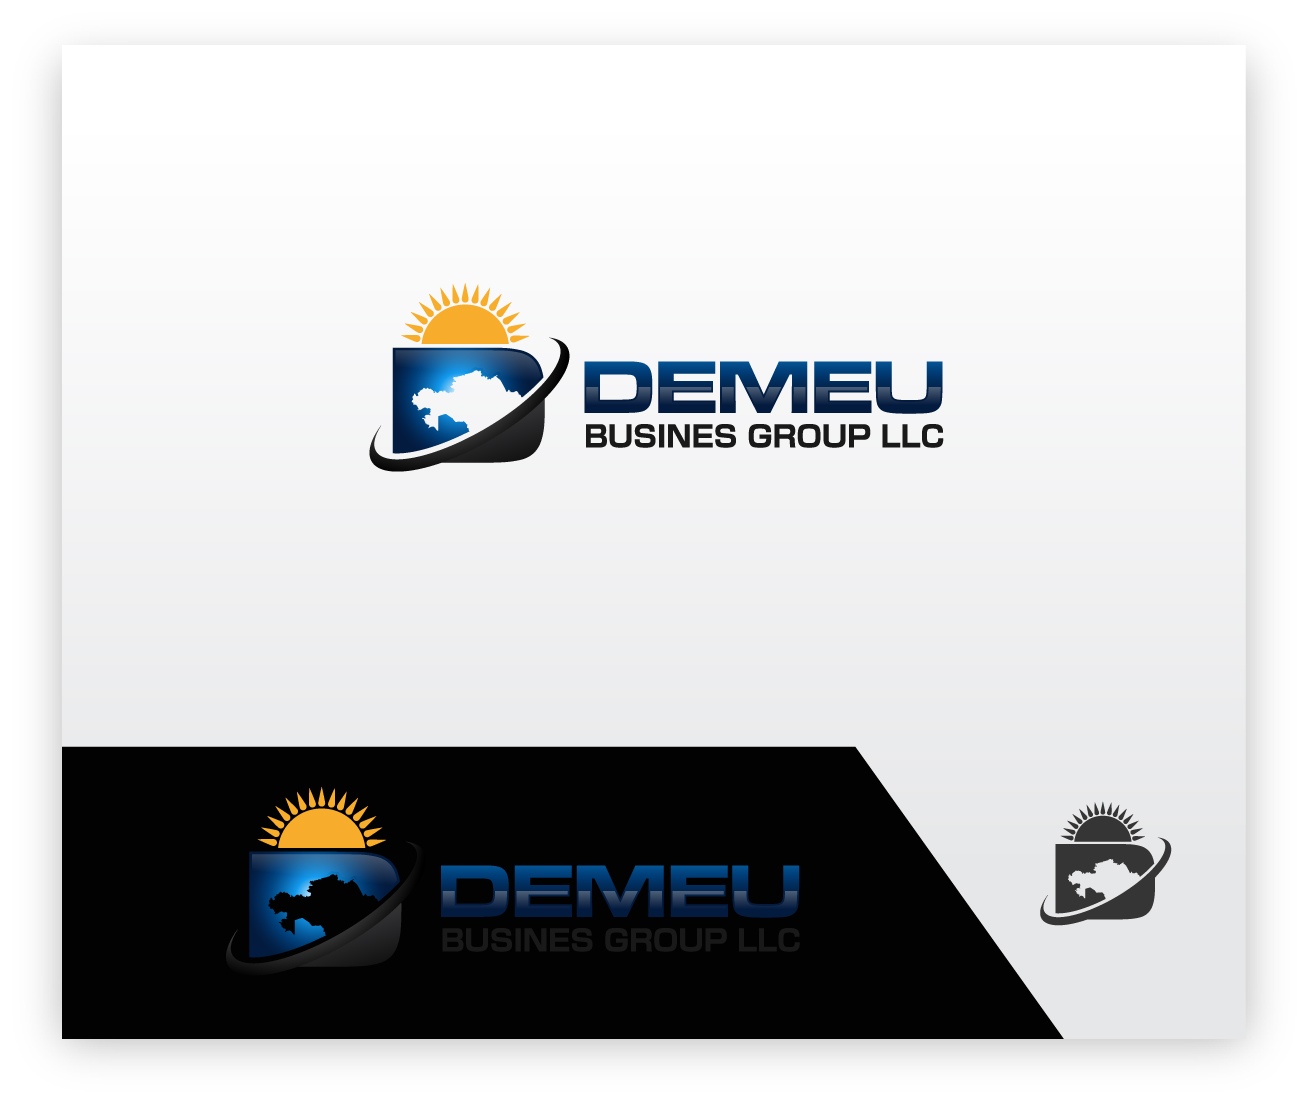 Logo Design by zoiDesign - Entry No. 112 in the Logo Design Contest Captivating Logo Design for DEMEU Business Group.